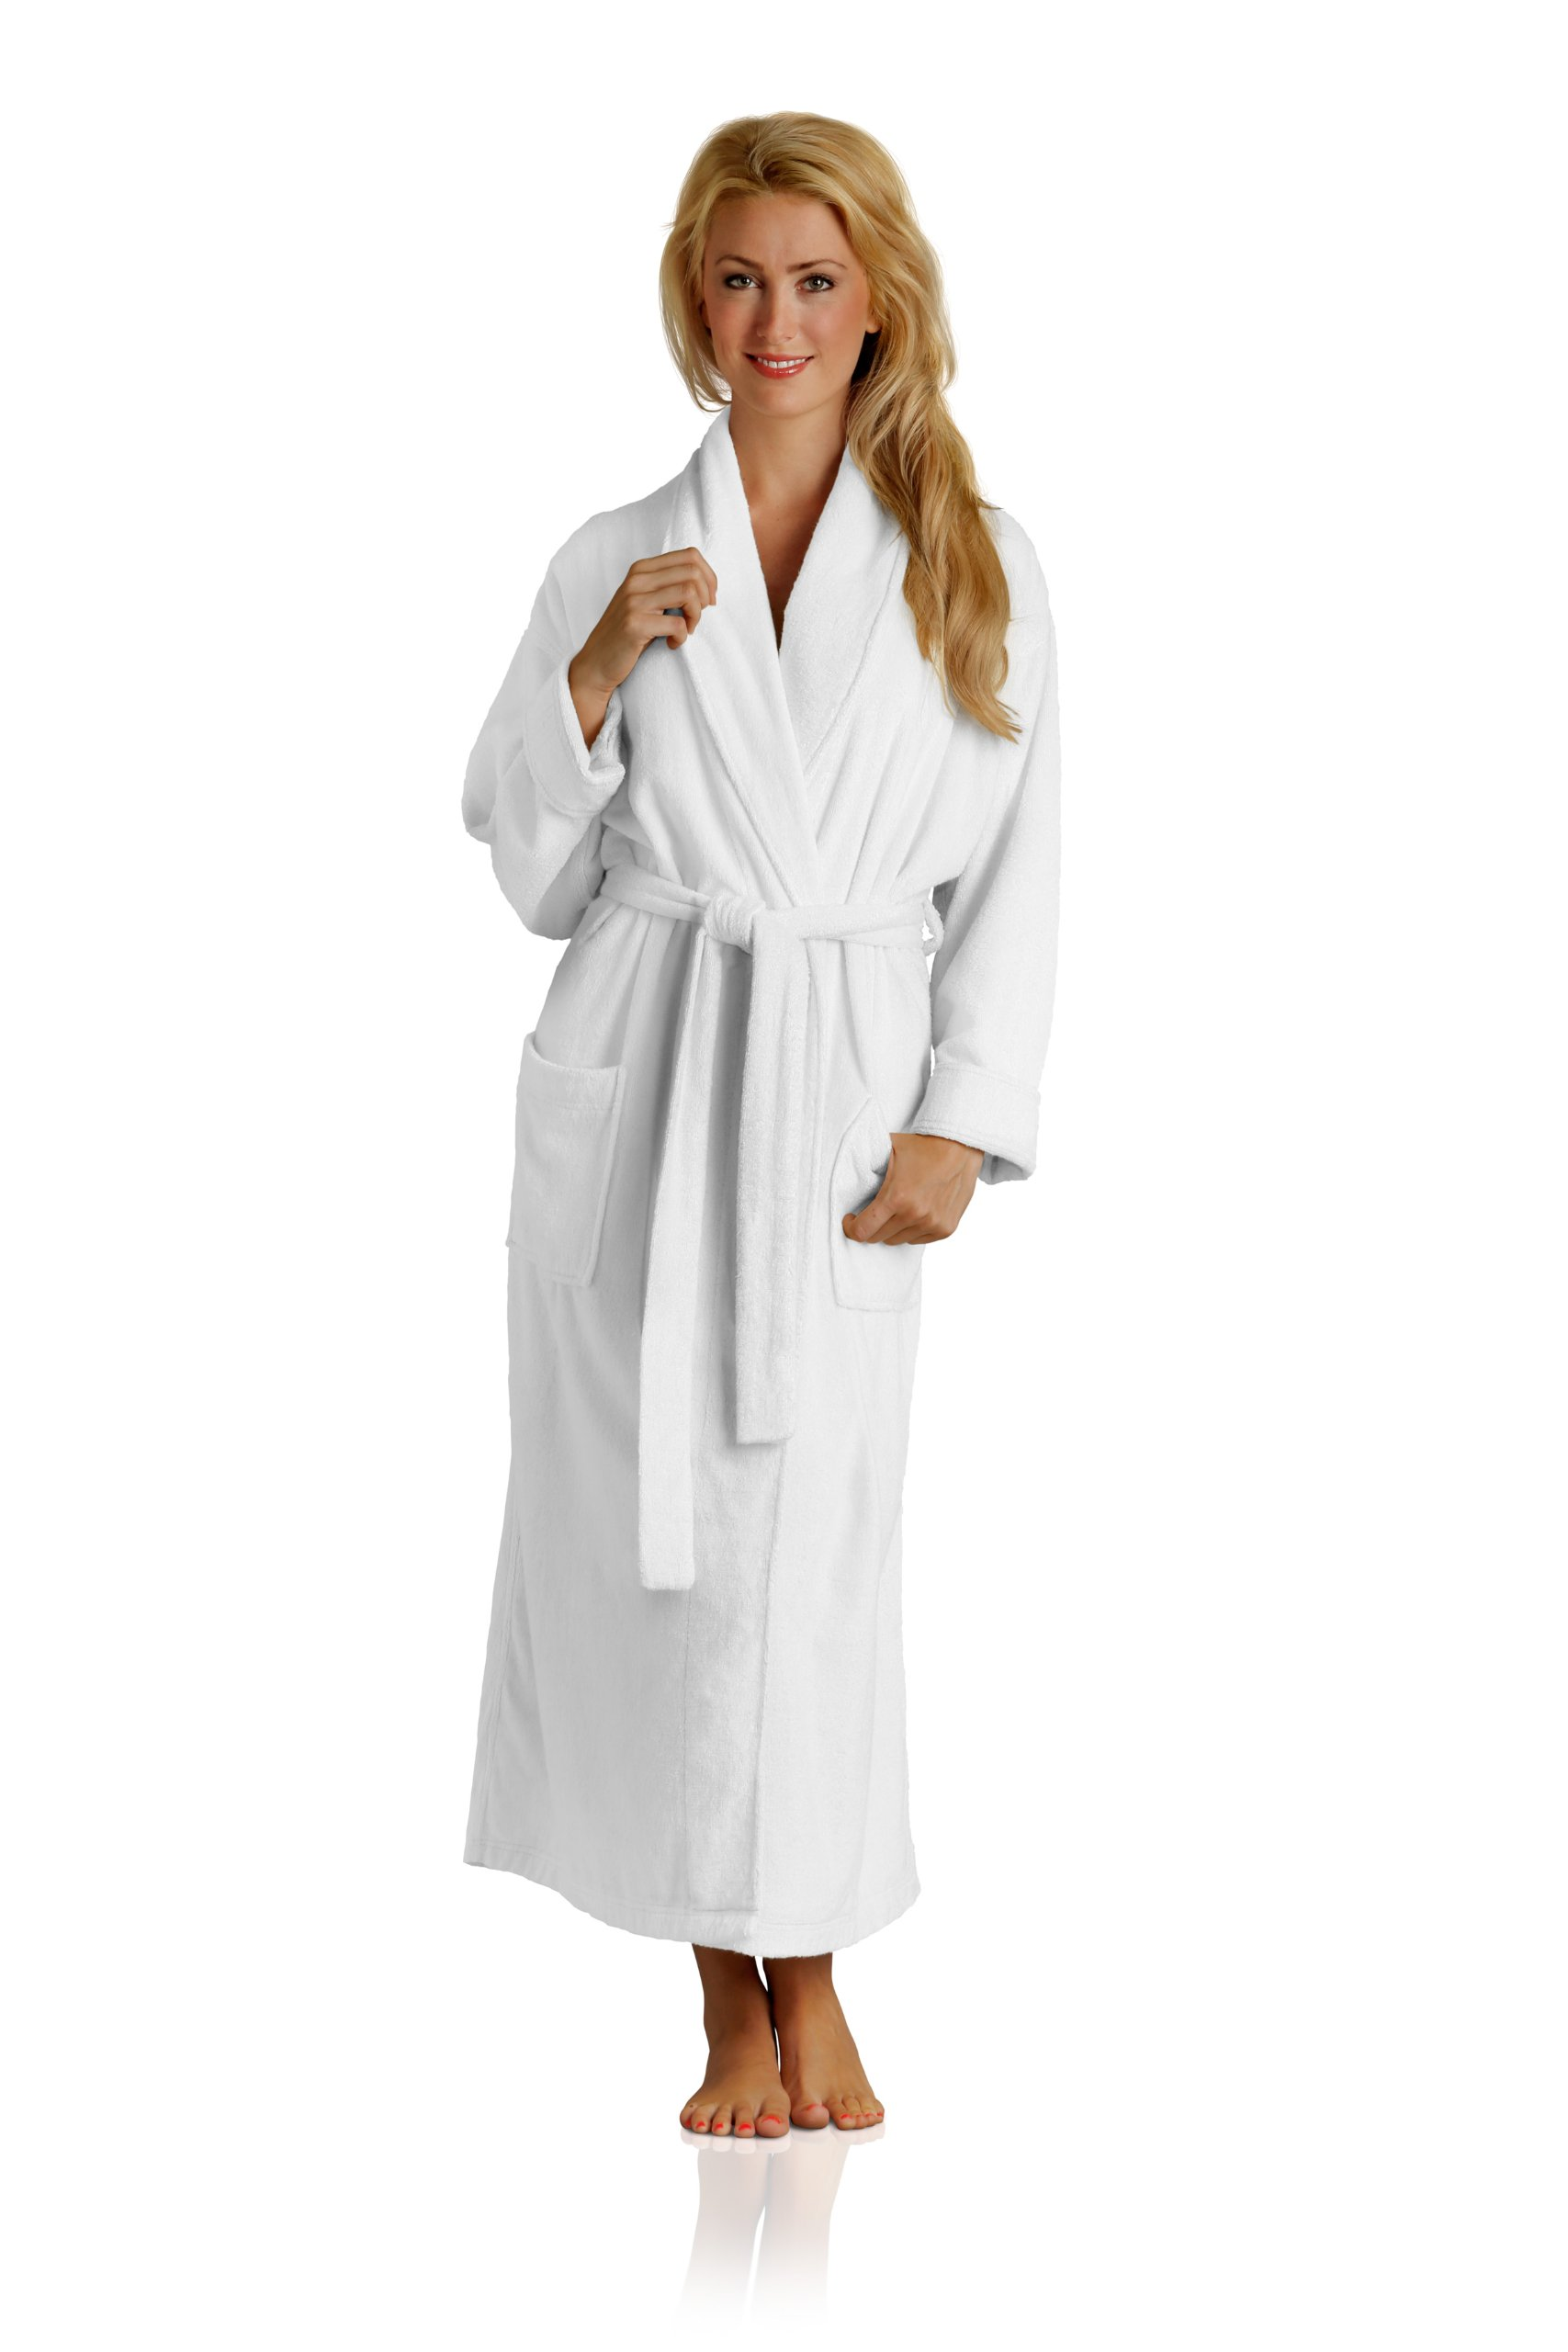 Pure Bliss Terry Robe - Super Absorbent and Soft - Cotton and Rayon from Bamboo in White, X-Large